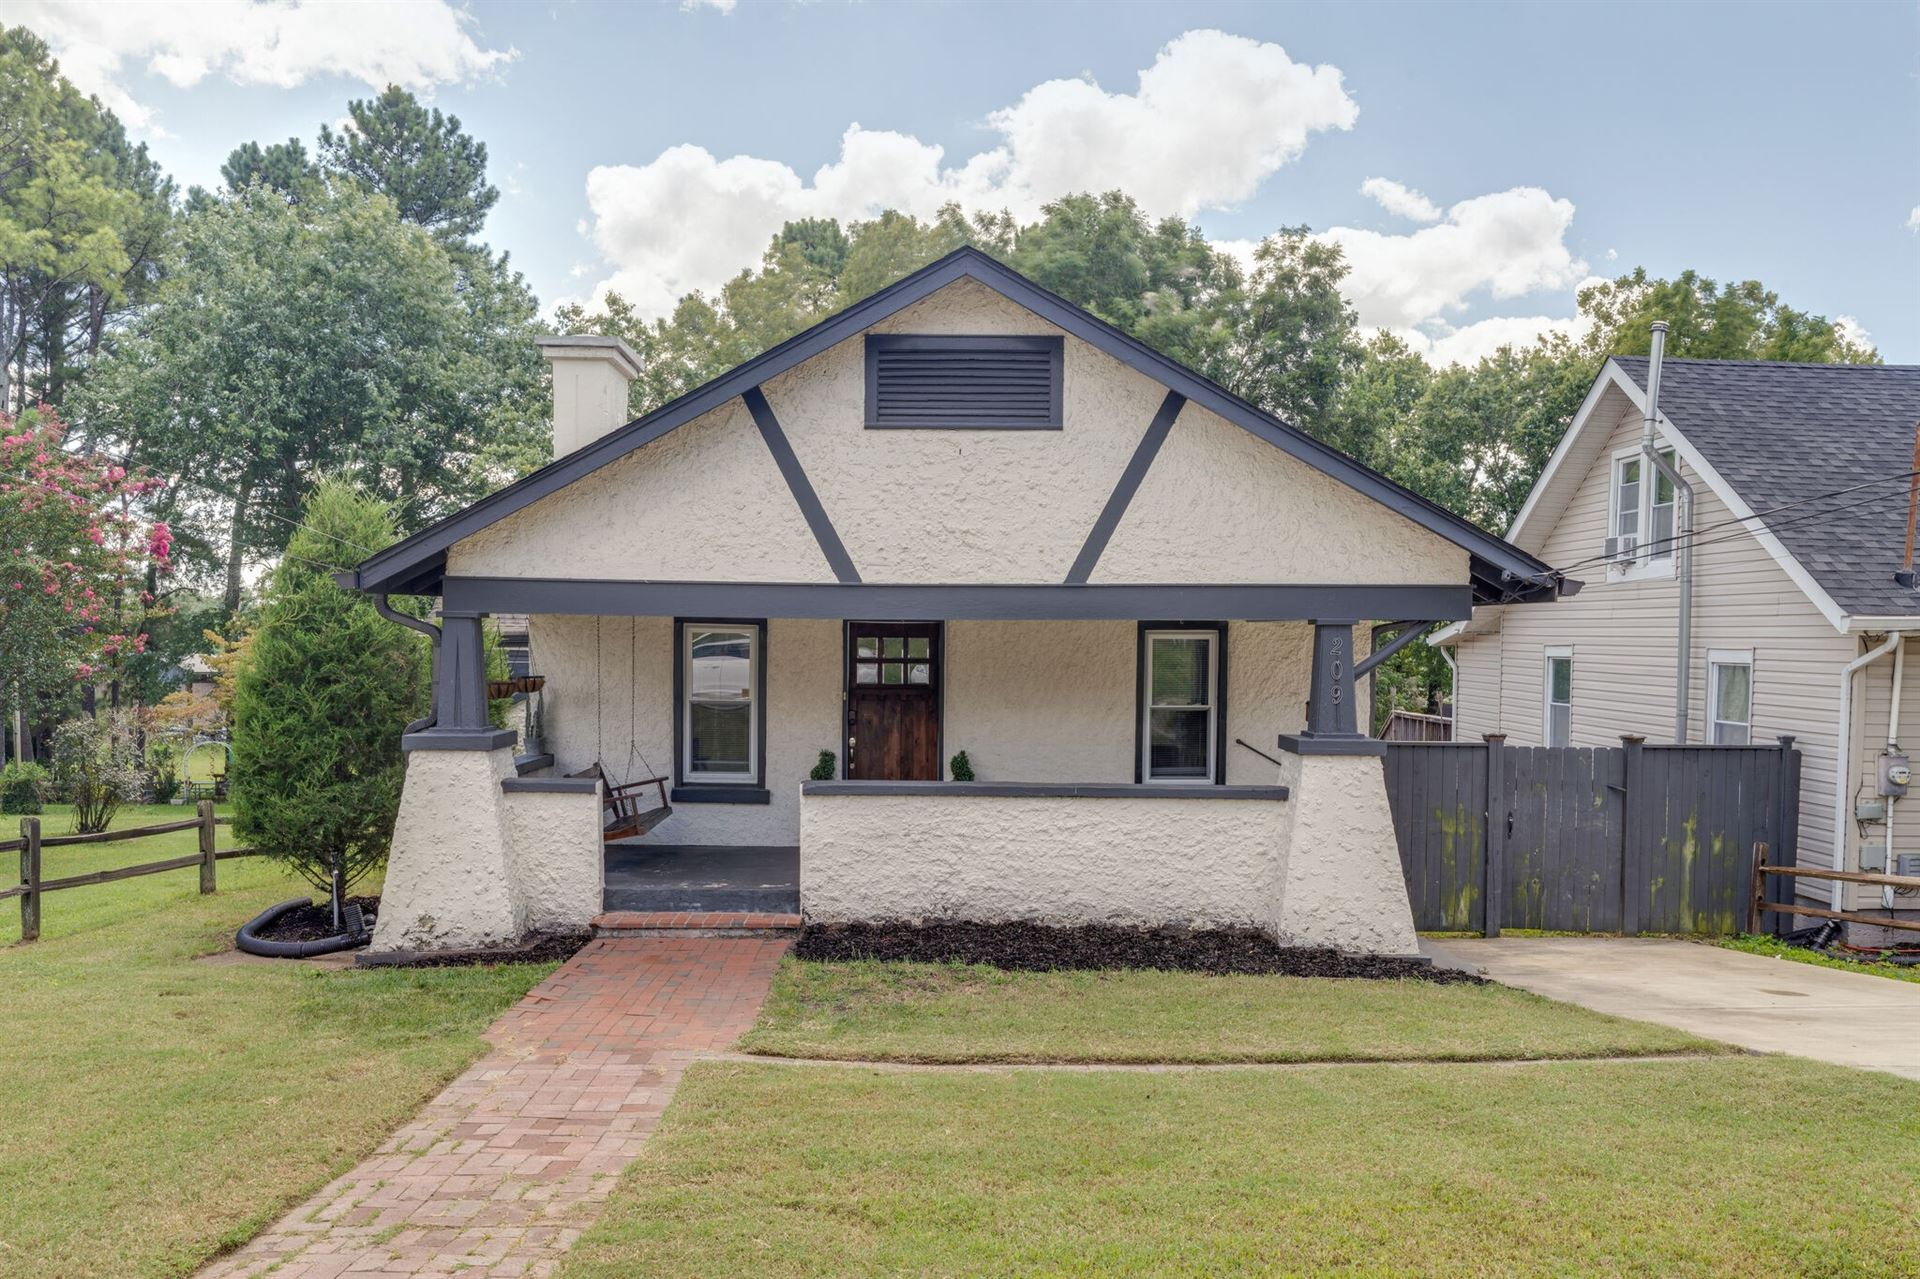 209 Rayon Dr, Old Hickory, TN 37138 - MLS#: 2291465